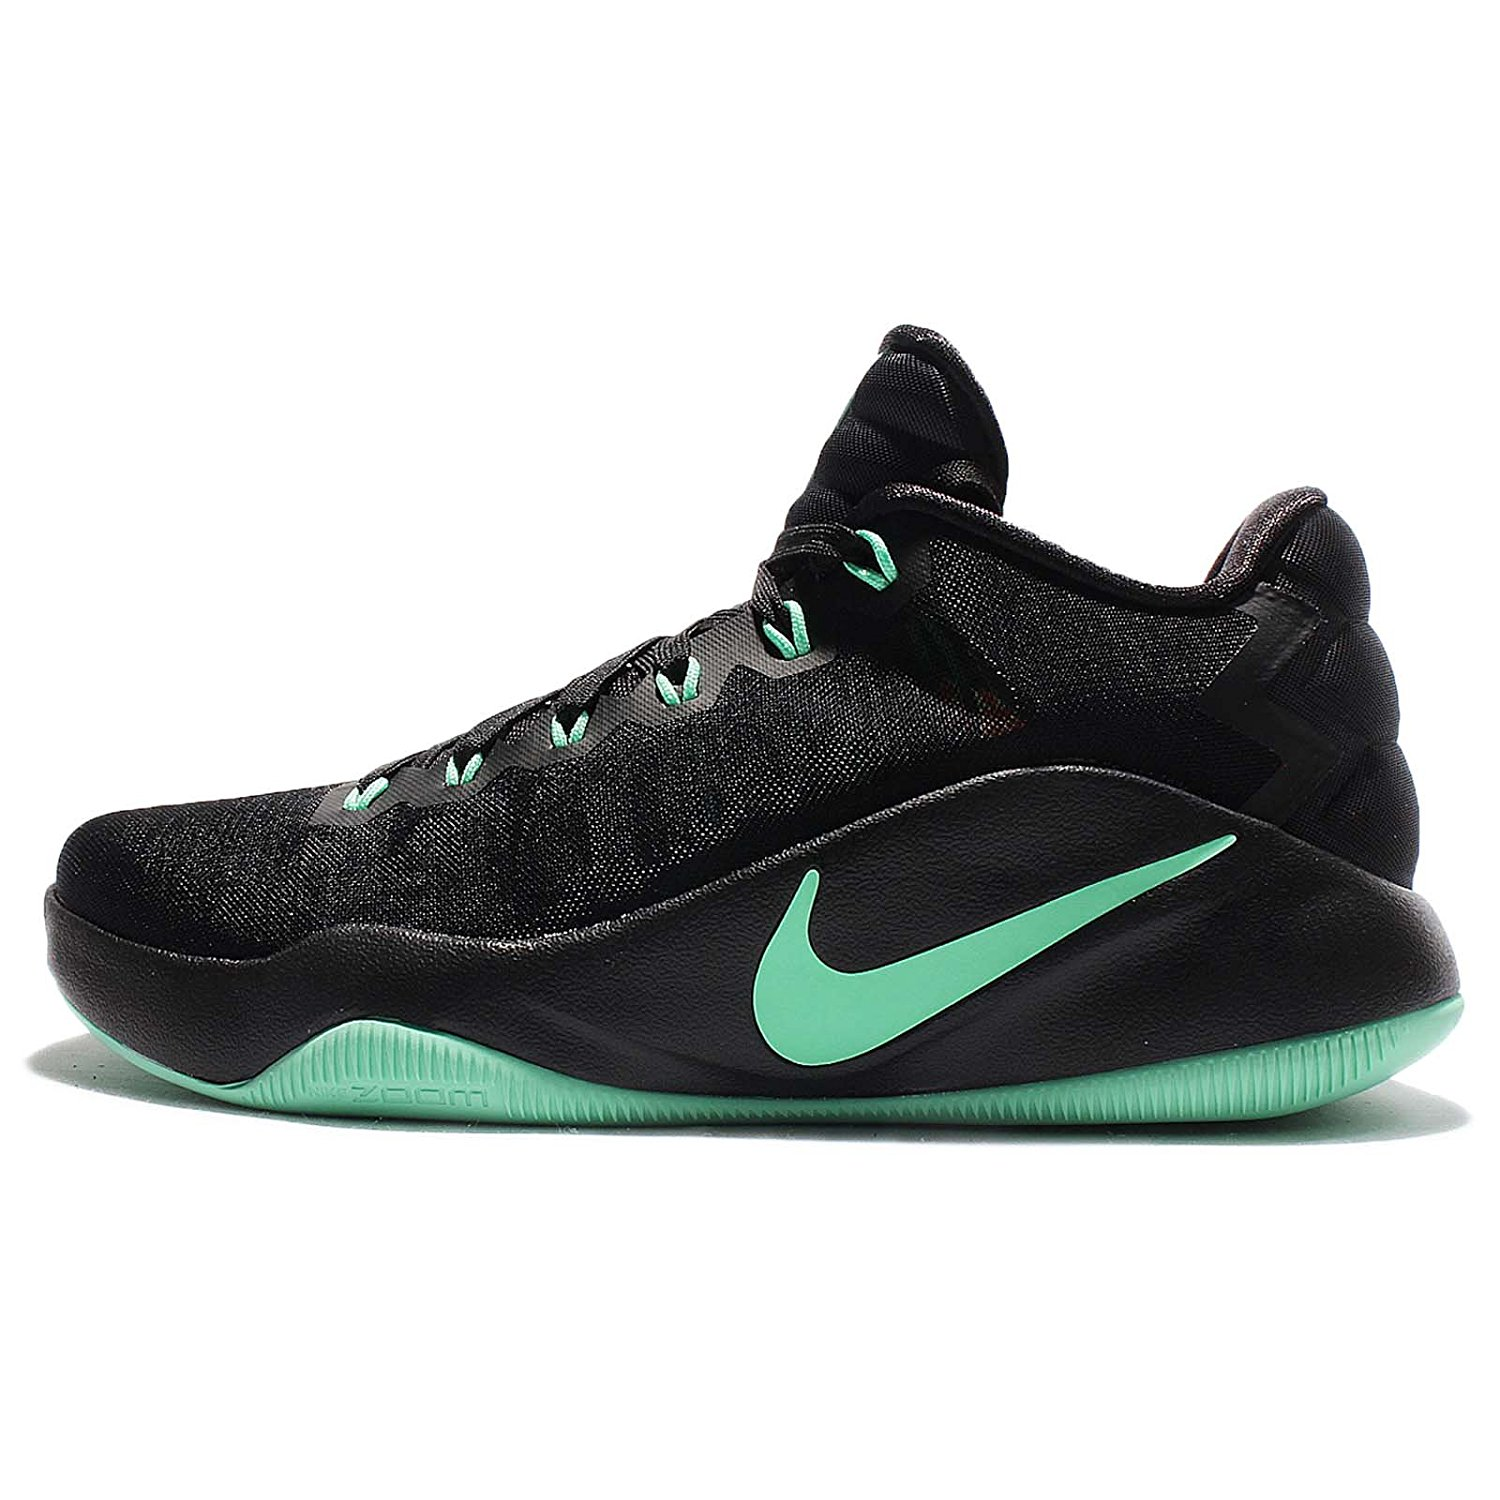 low priced d318c 0d6d1 Get Quotations · Nike Men s Hyperdunk 2016 Low Ep, BLACK GREEN GLOW, ...